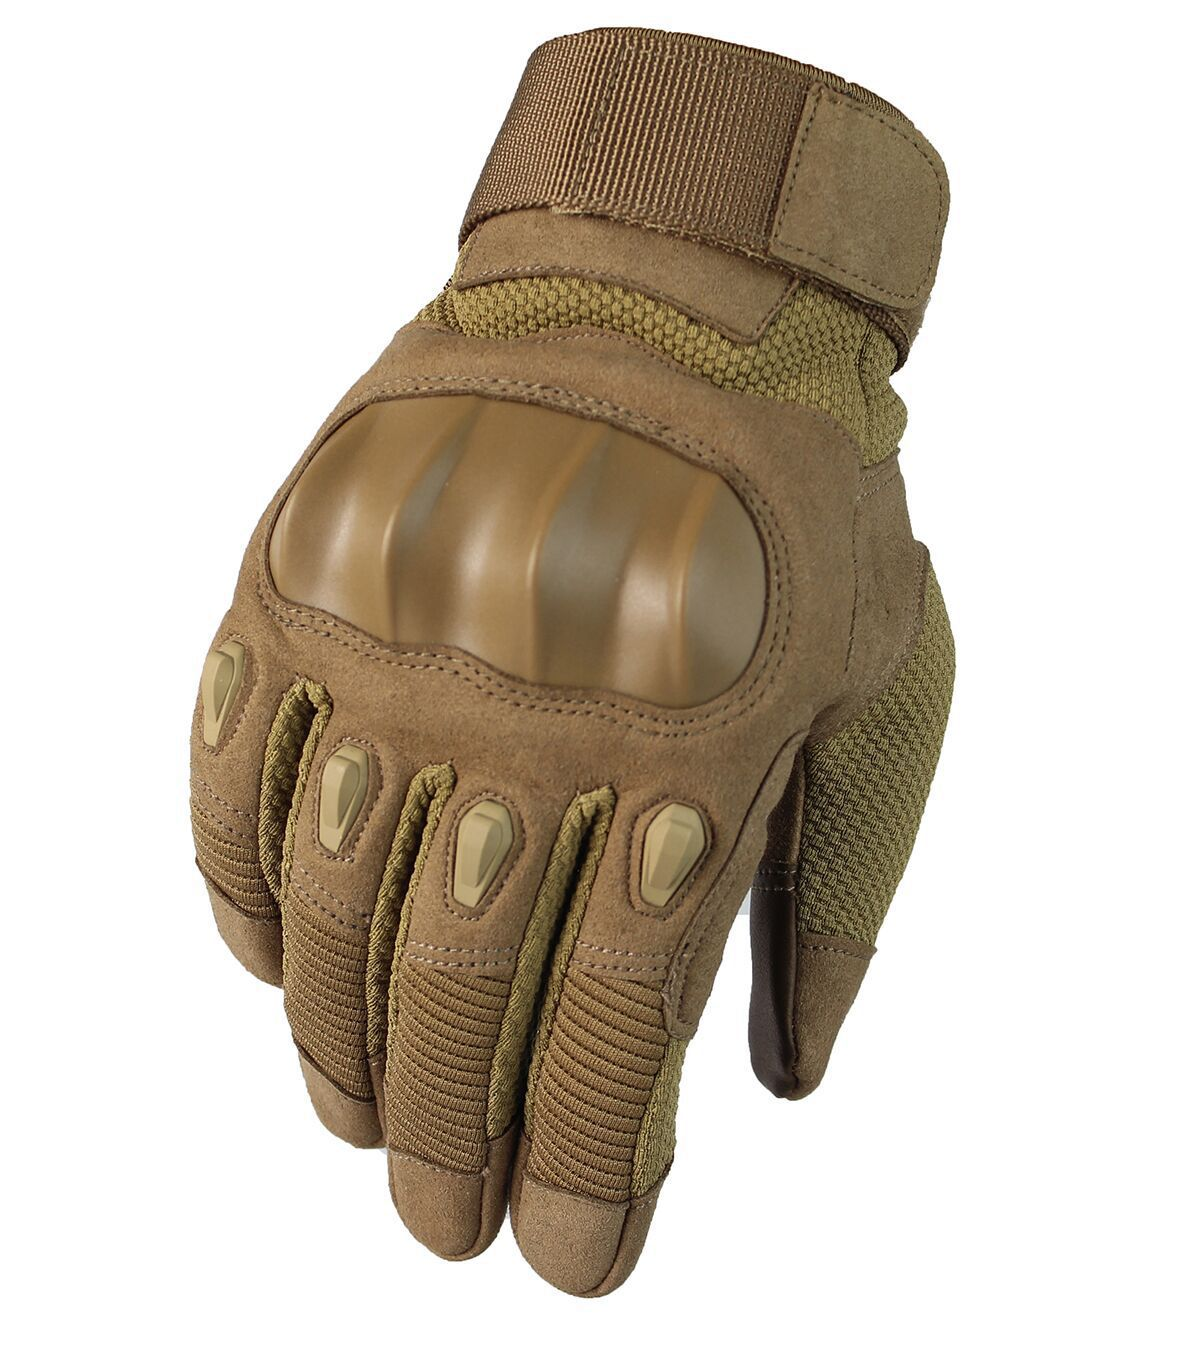 New Outdoor Anti-slip Motorcycle Gloves Climbing Fitness Sports Tactical Gloves Ski Gloves